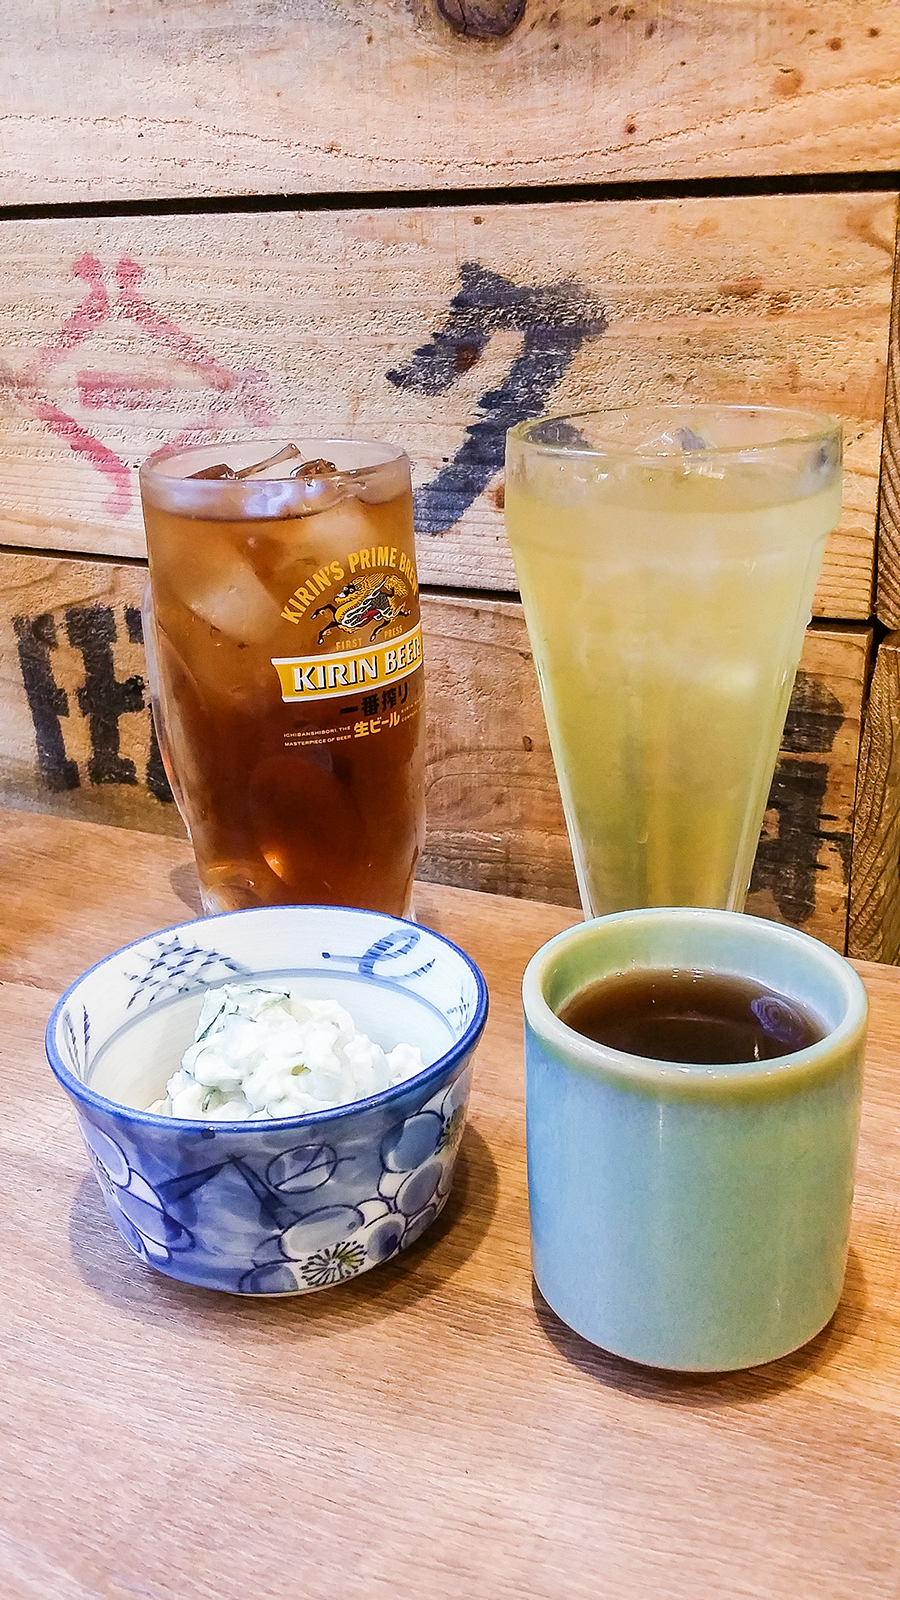 Potato Salad, Beer, Green tea at Isomaru Suisan in Tokyo, Japan.